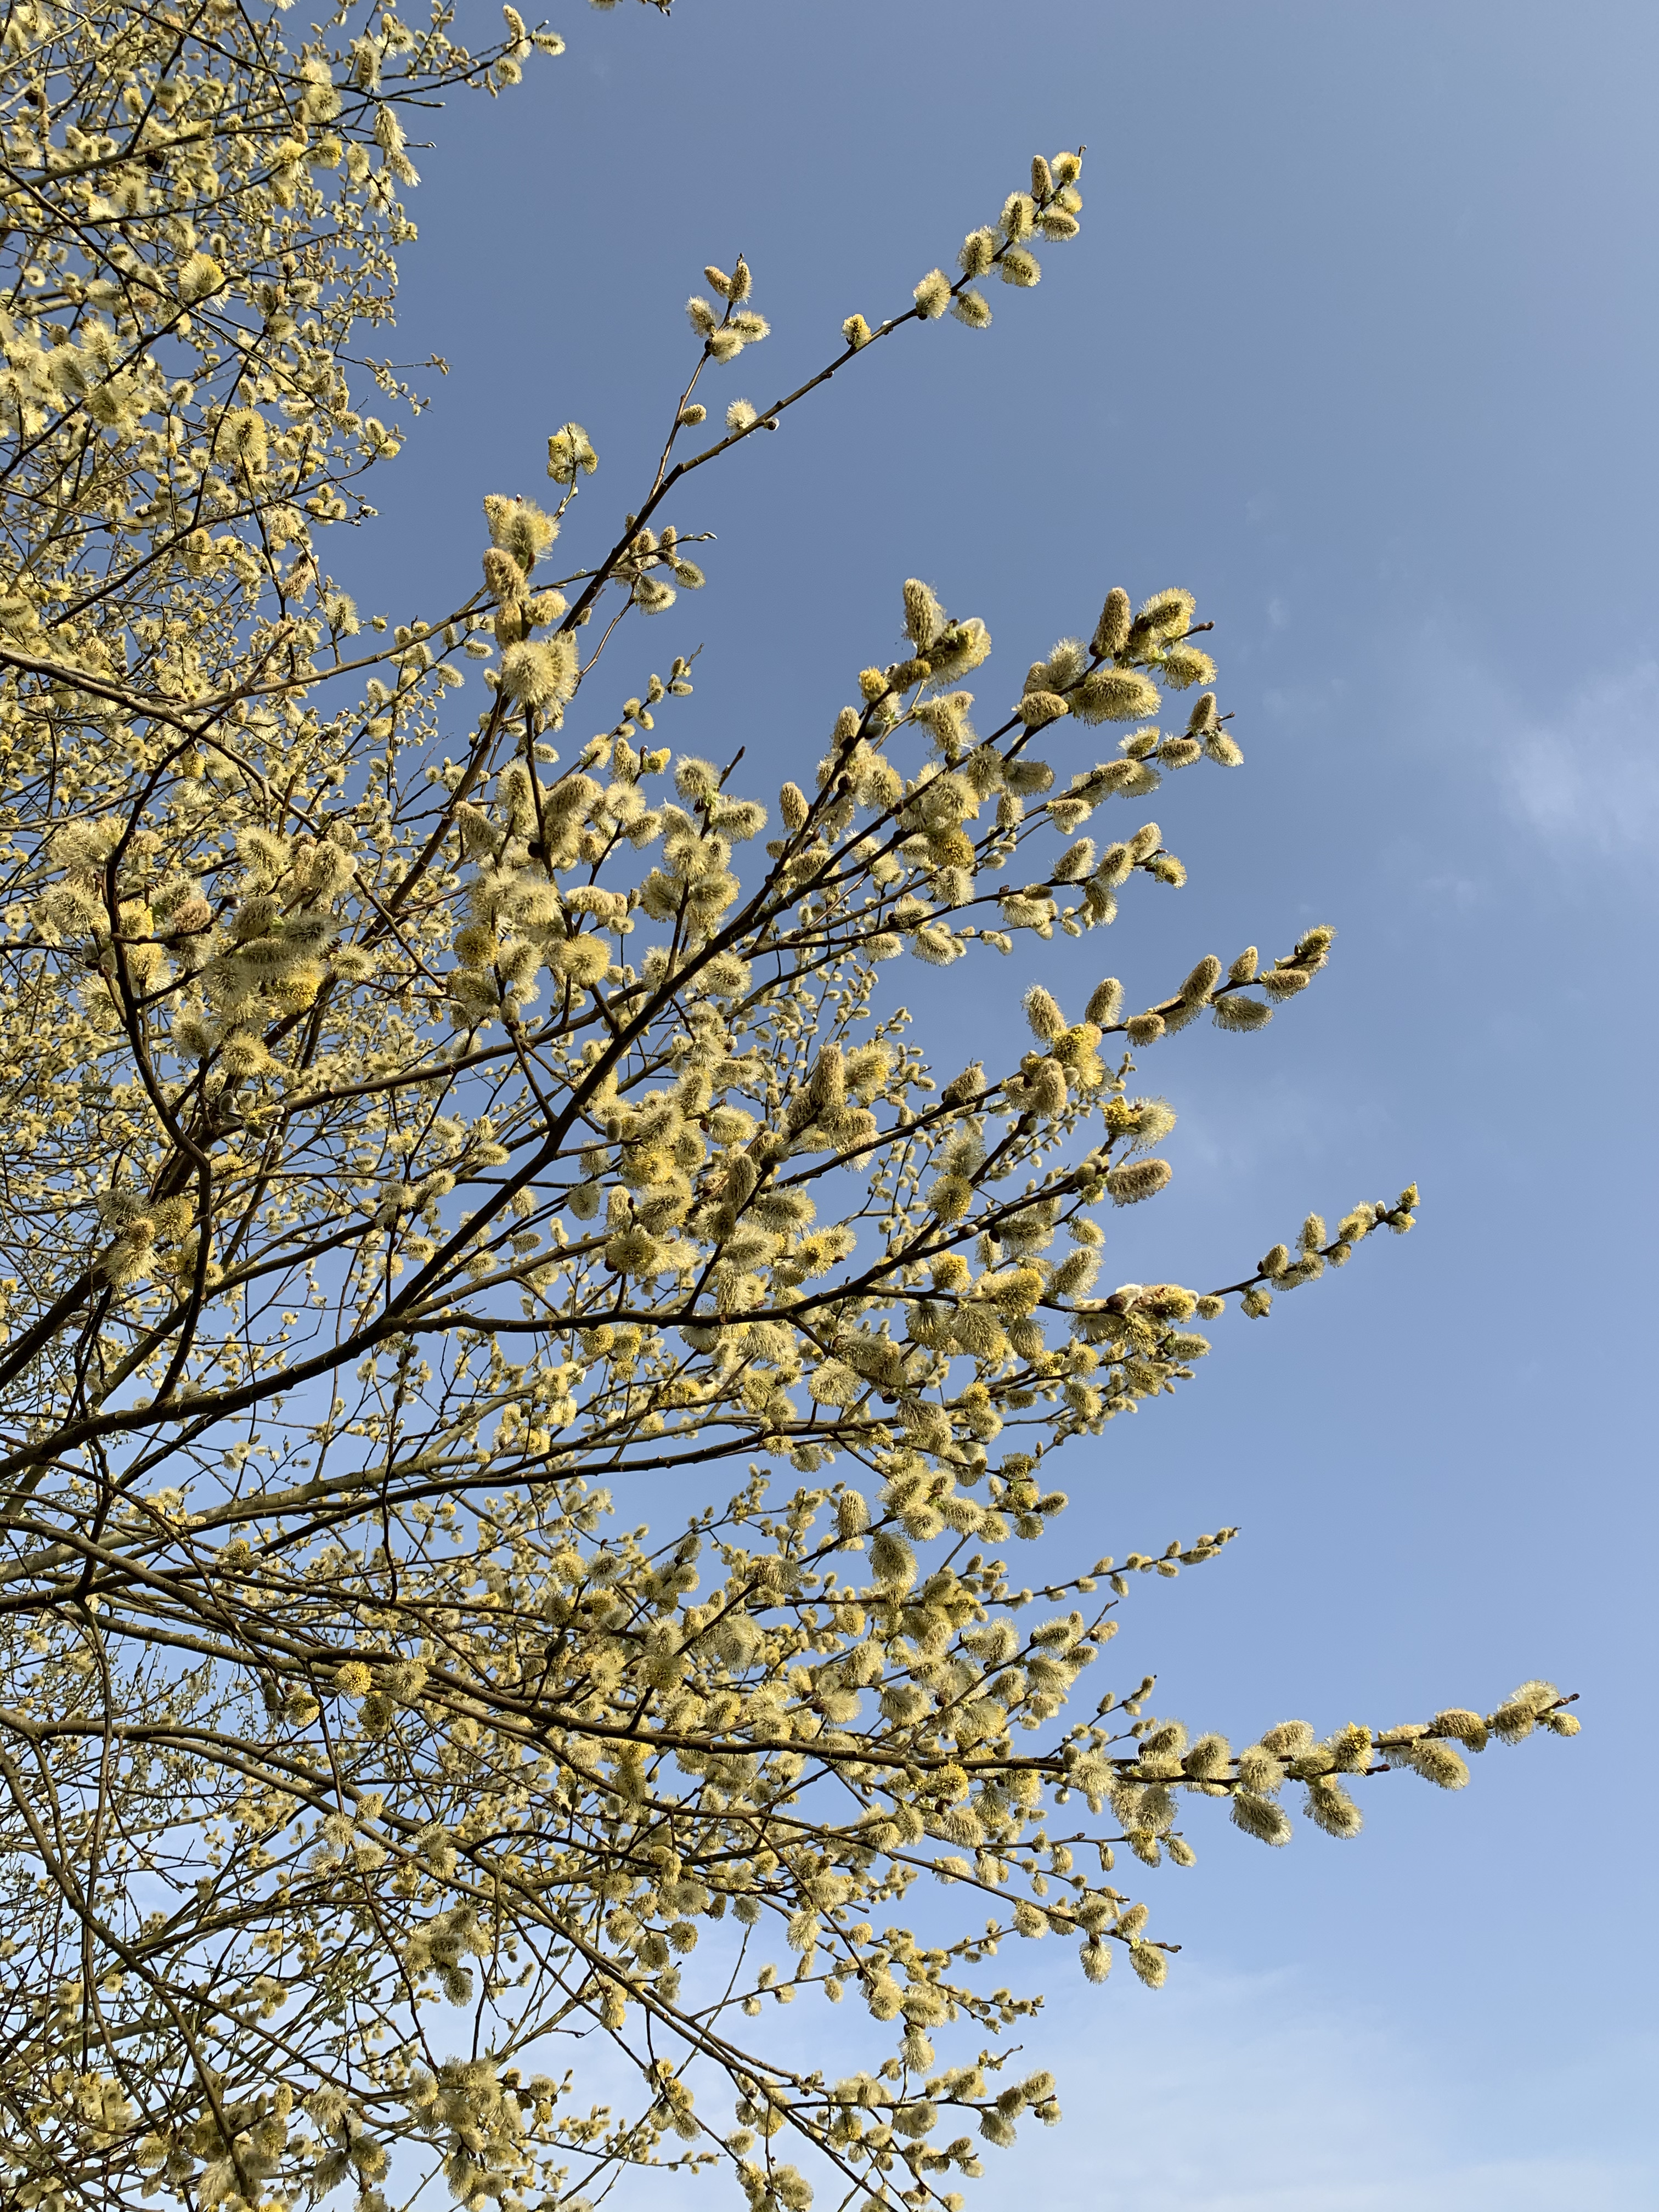 Hundreds of open willow buds, covering in yellow pollen, glow against a pale blue sky.